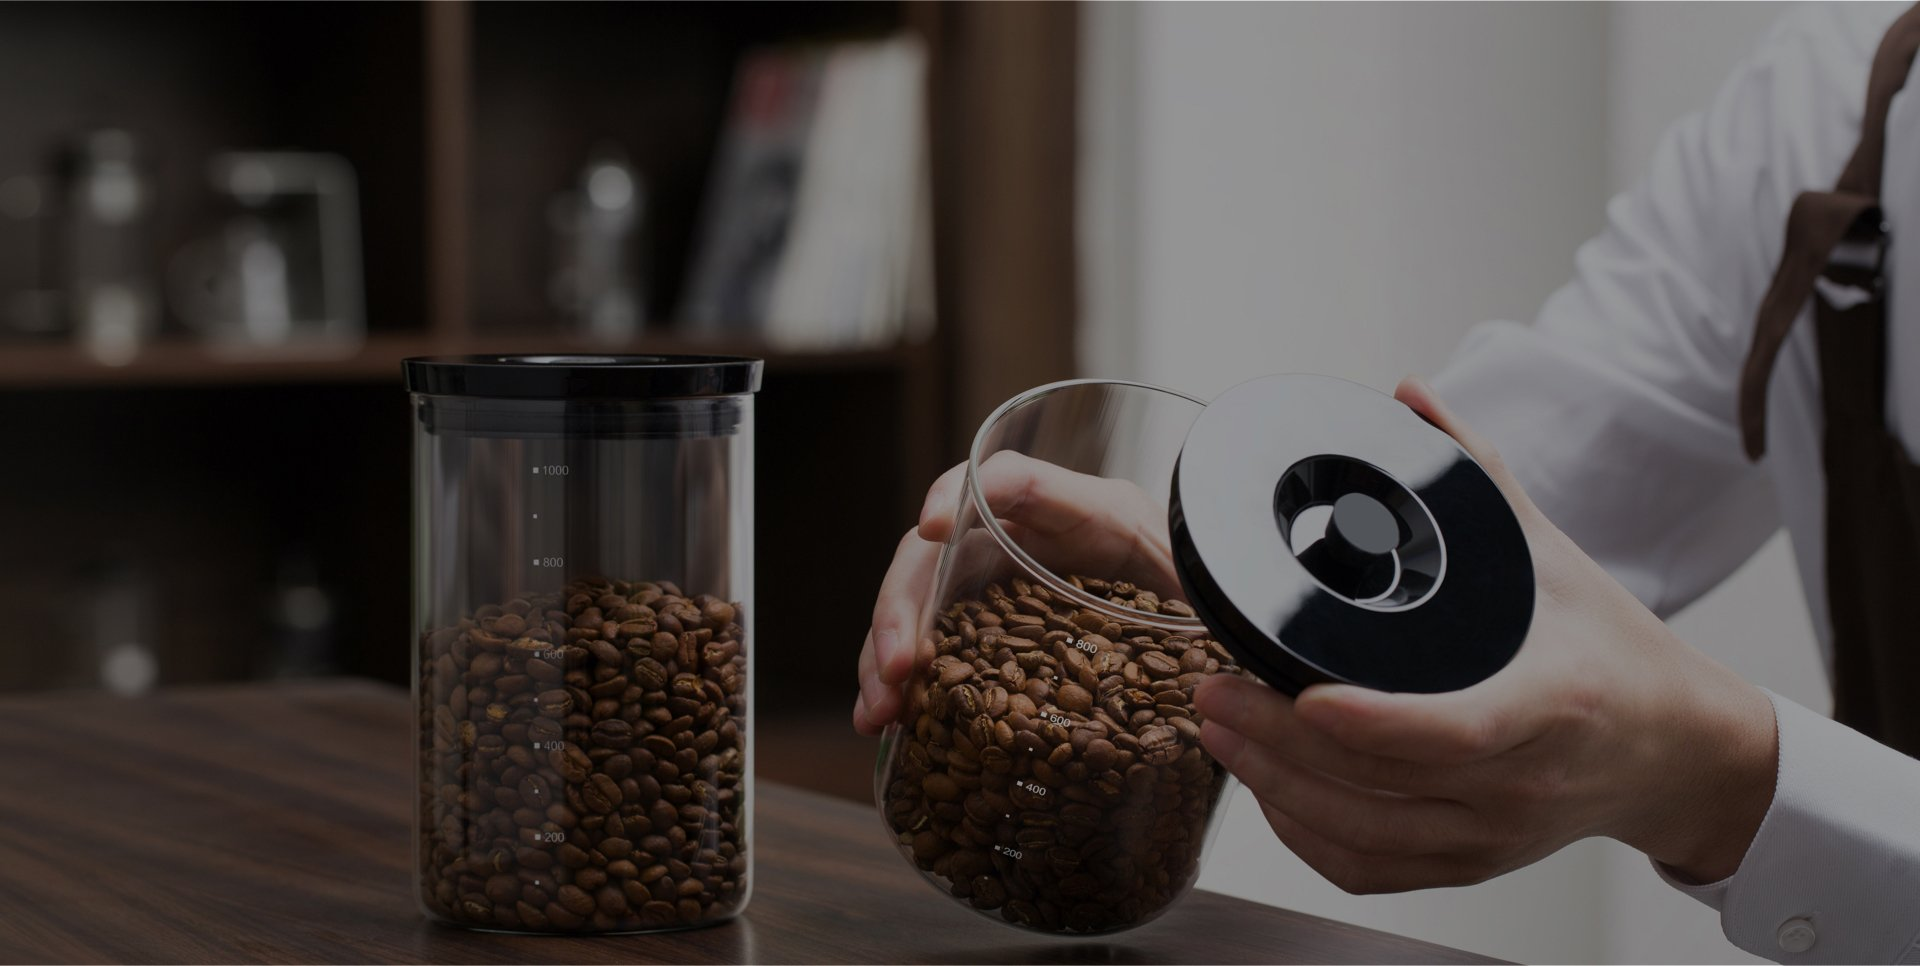 Preserve coffee flavors for longer and keeps contents fresher